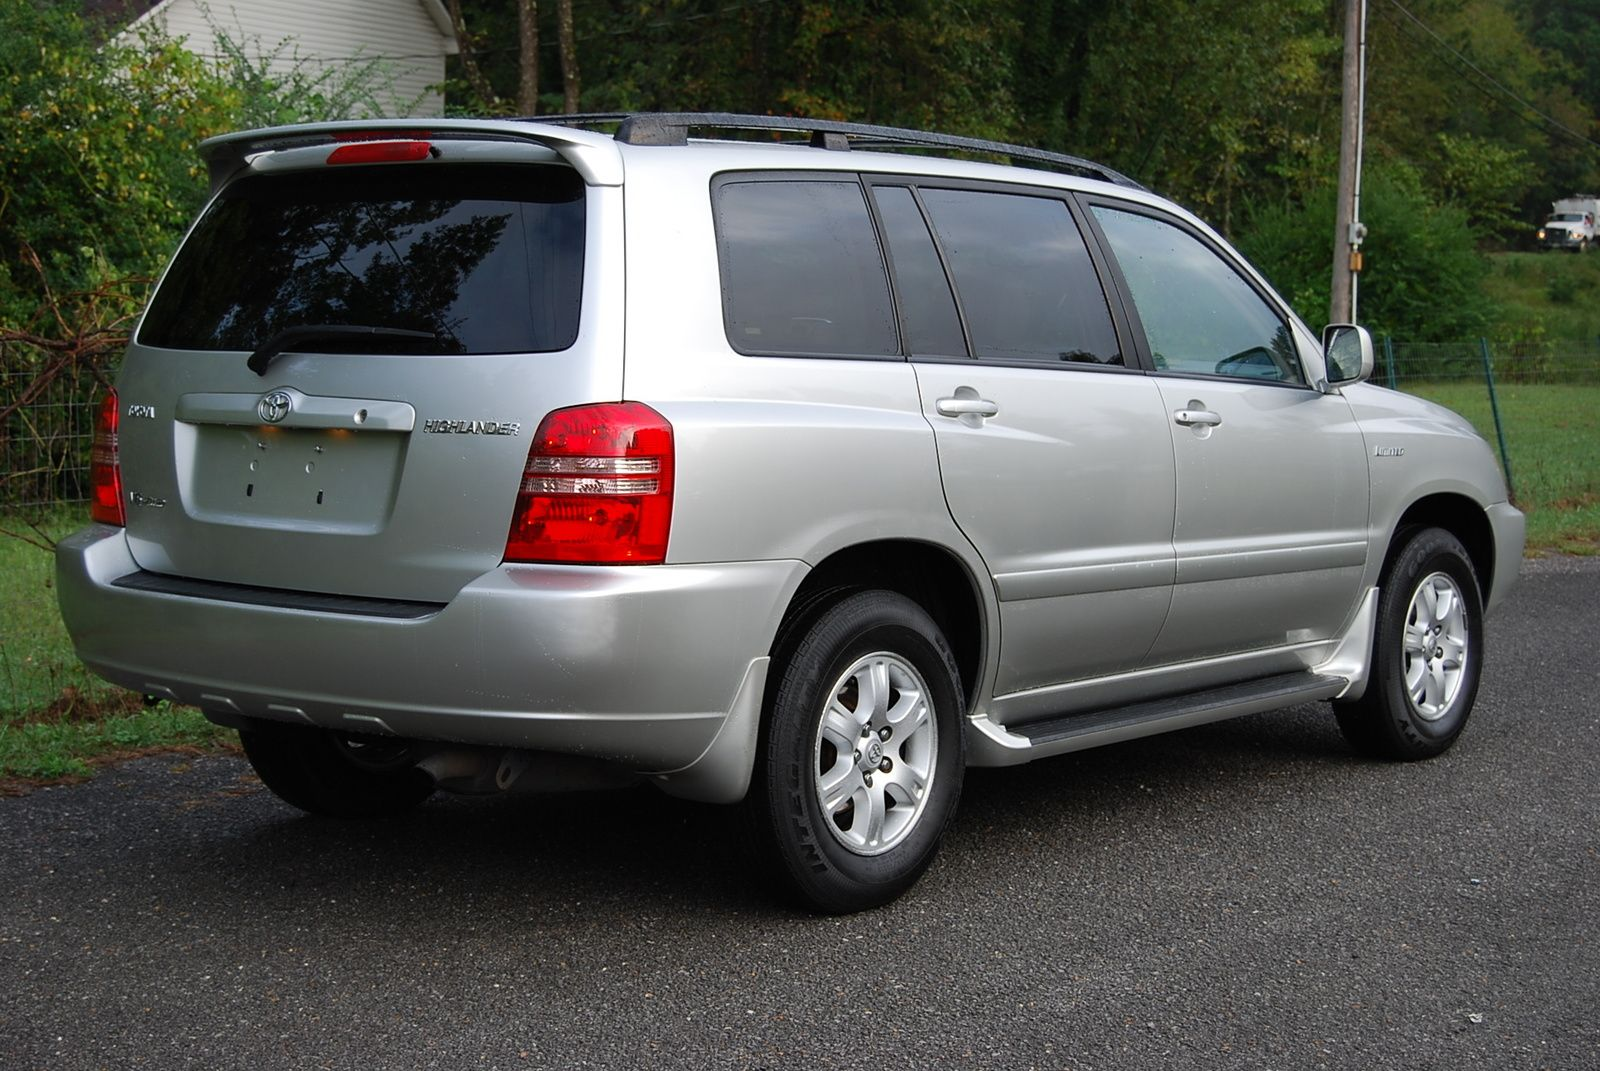 2002 toyota highlander pictures see 258 pics for 2002 toyota highlander browse interior and exterior photos for 2002 toyota highlander